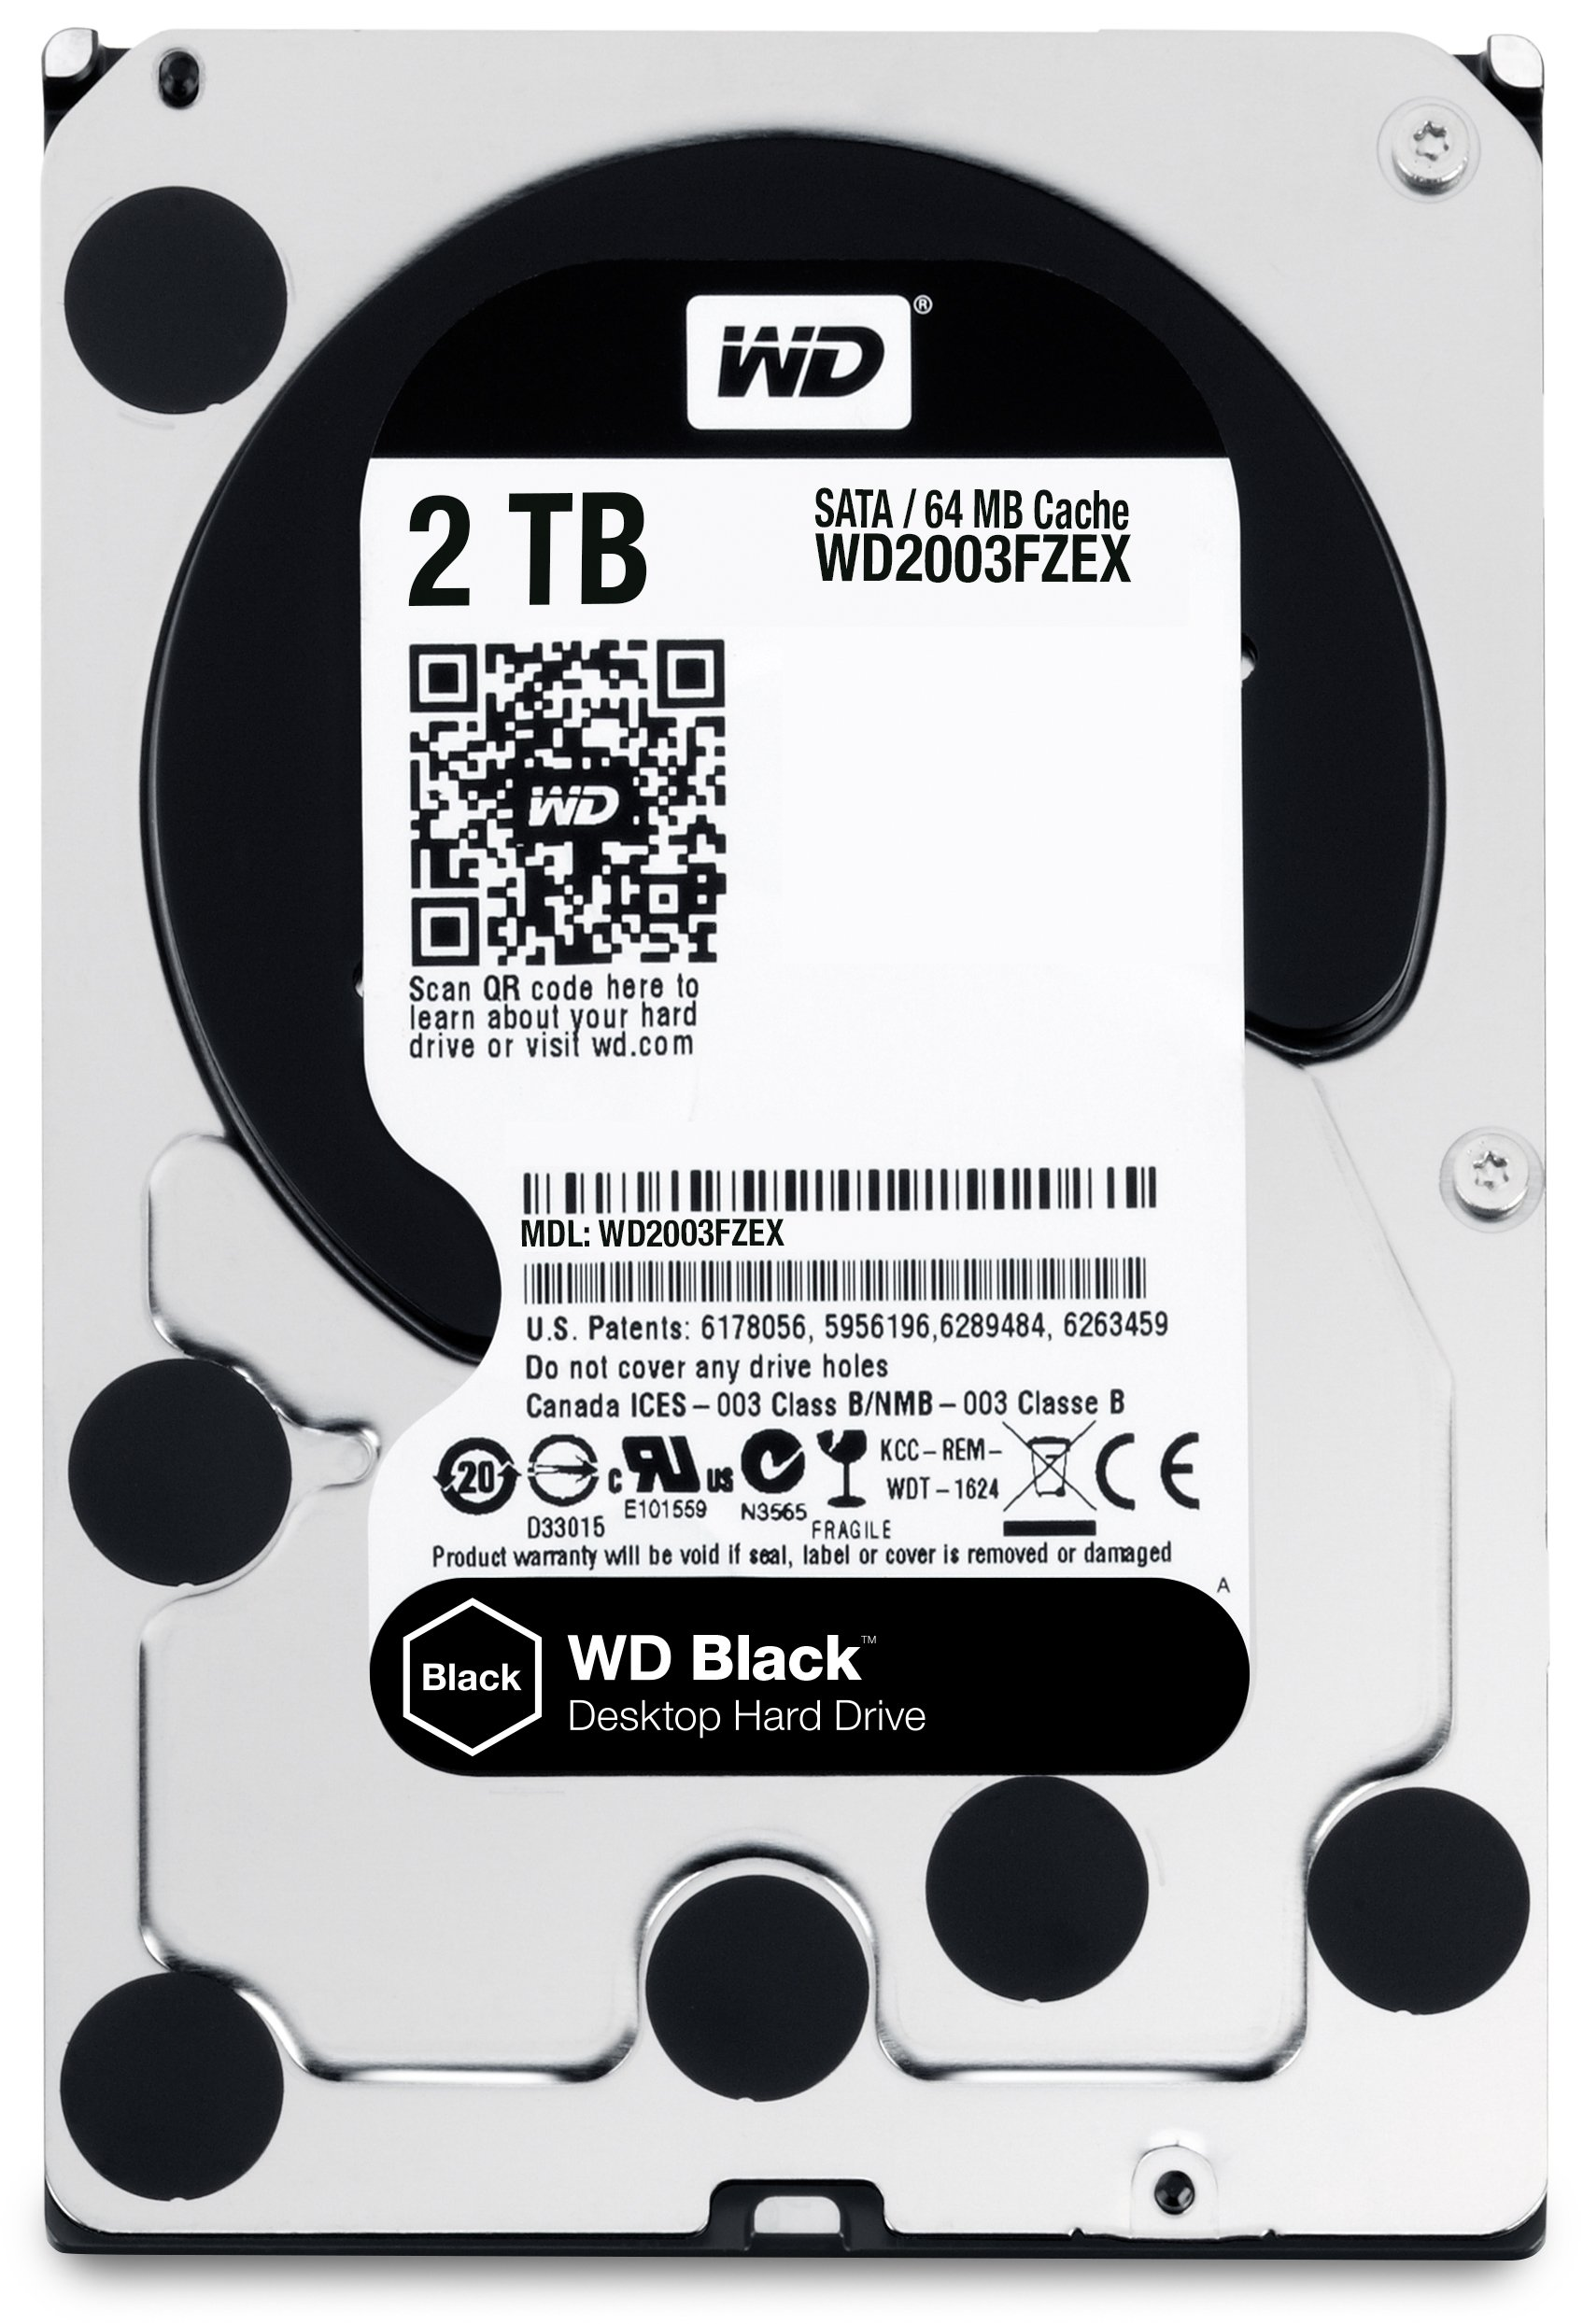 WD Black 2TB Performance Desktop Hard Disk Drive - 7200 RPM SATA 6 Gb/s 64MB Cache 3.5 Inch  - WD2003FZEX by Western Digital